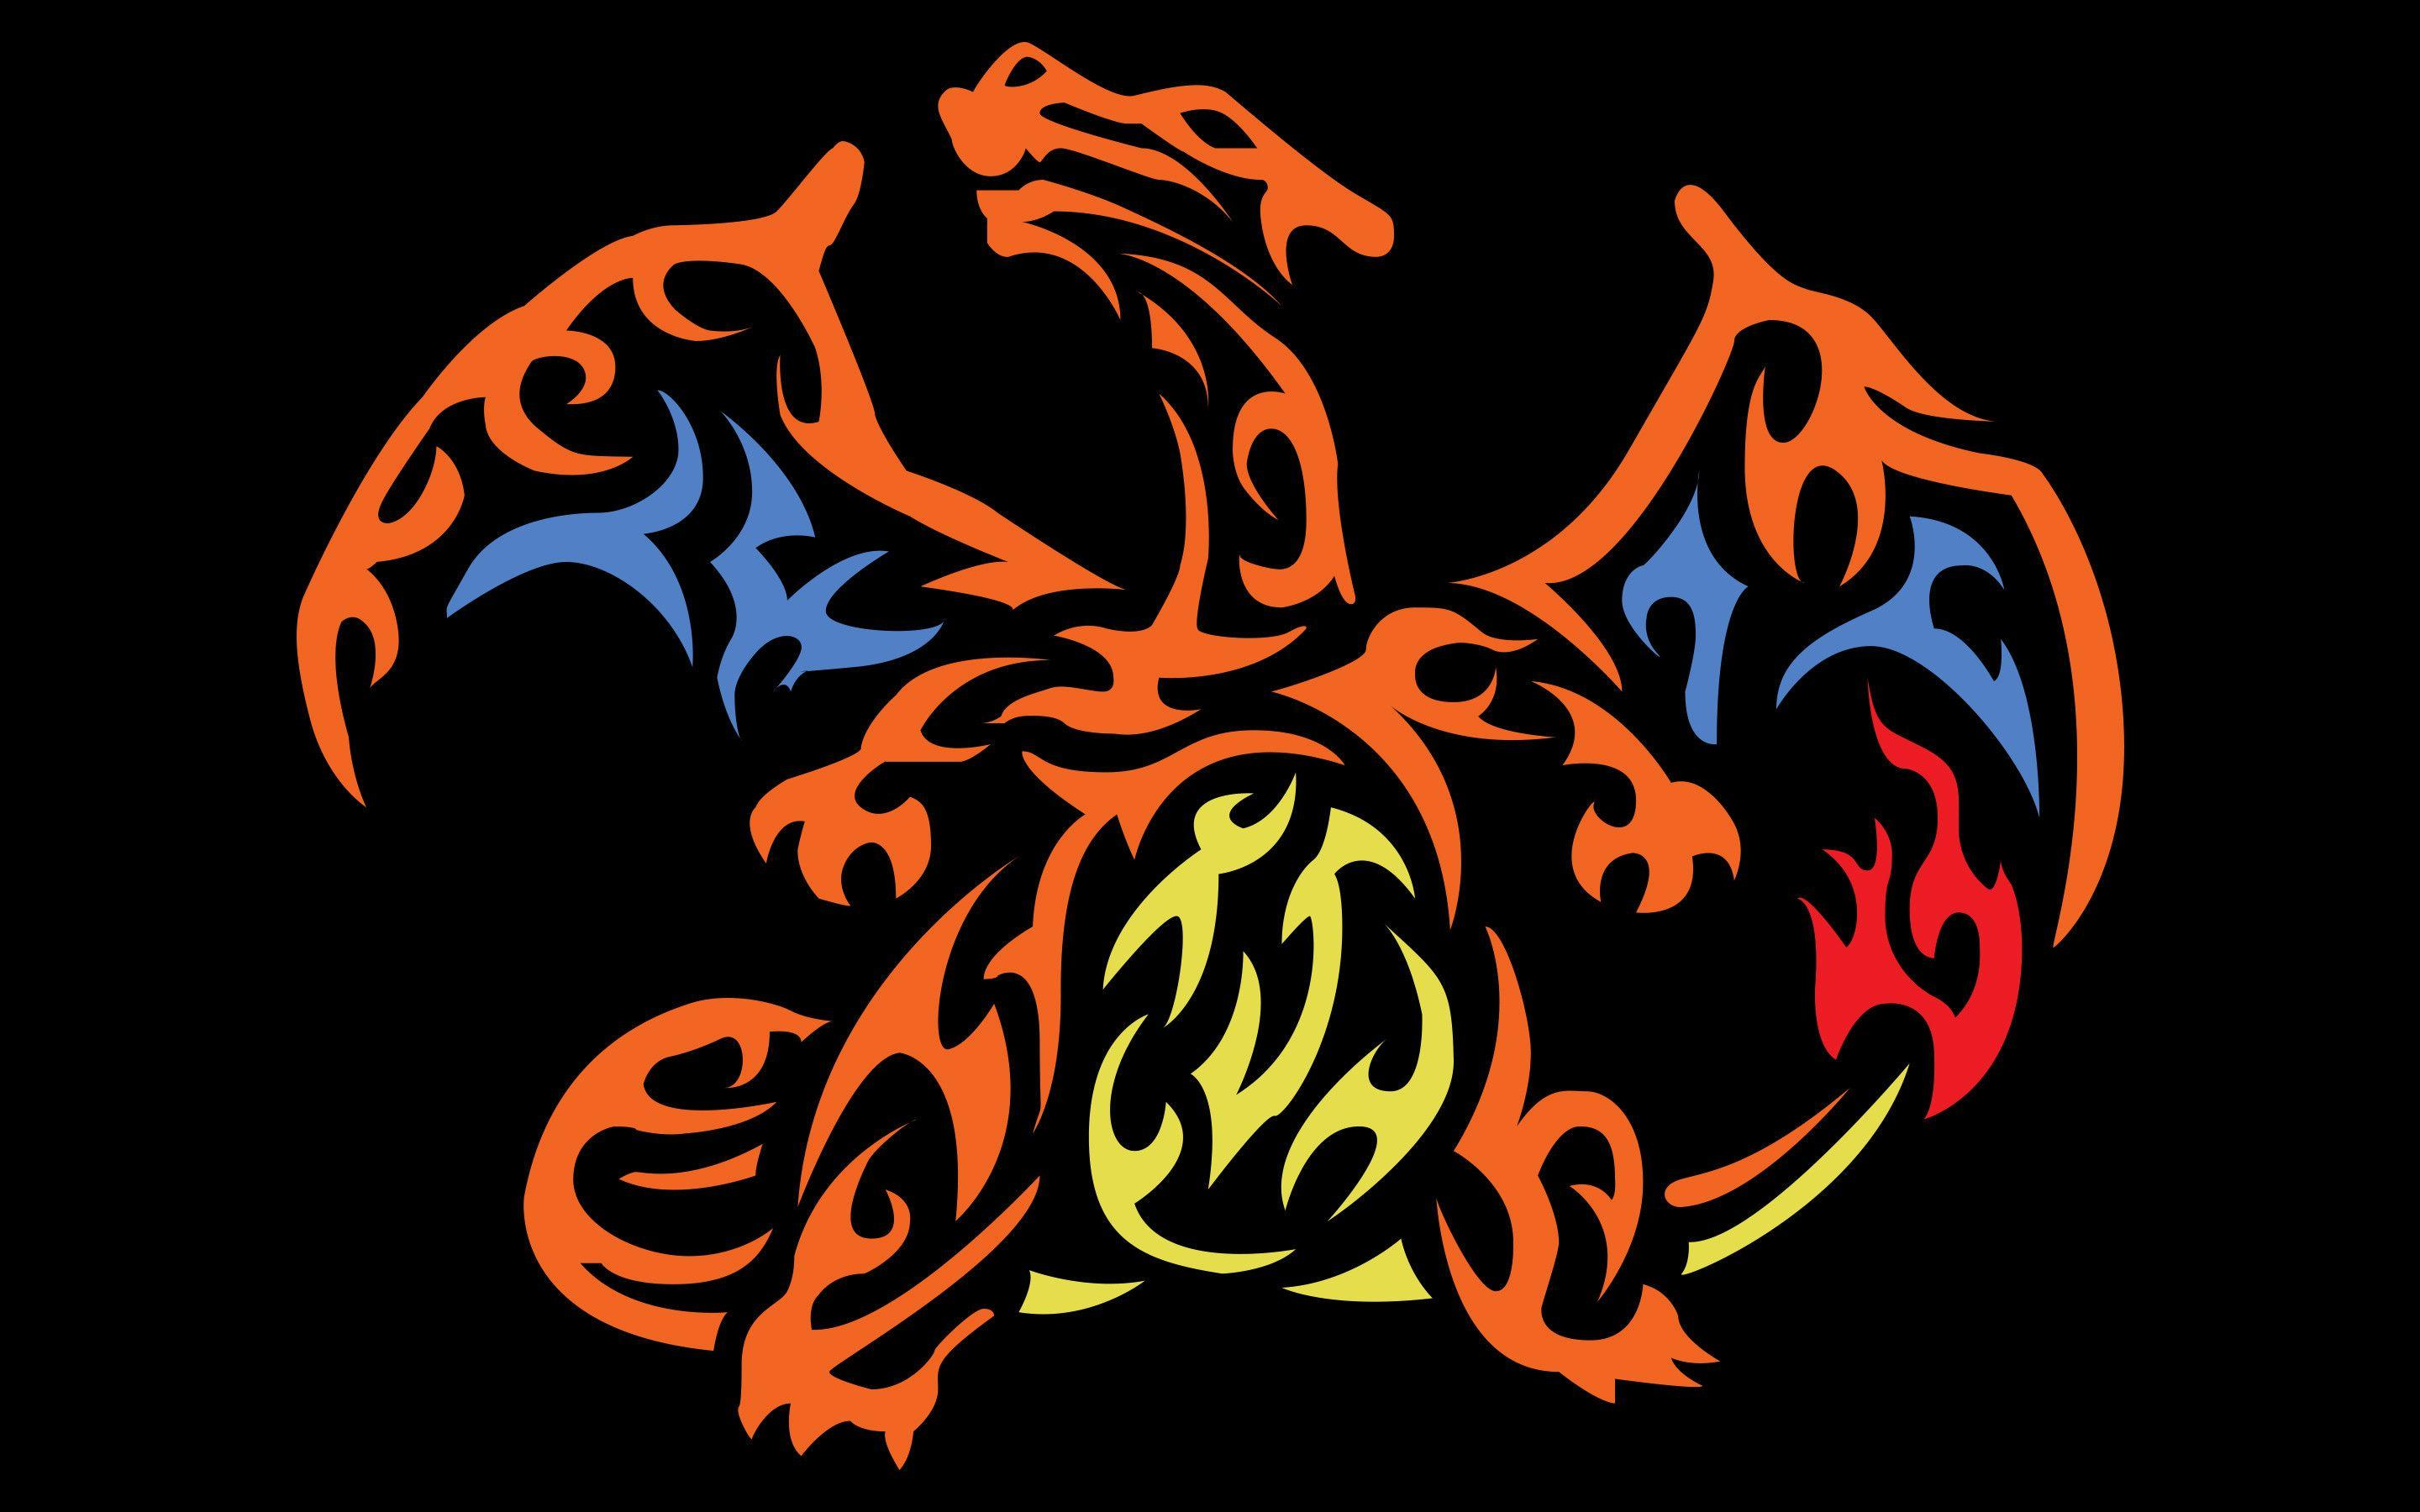 Charizard Wallpapers - Full HD wallpaper search